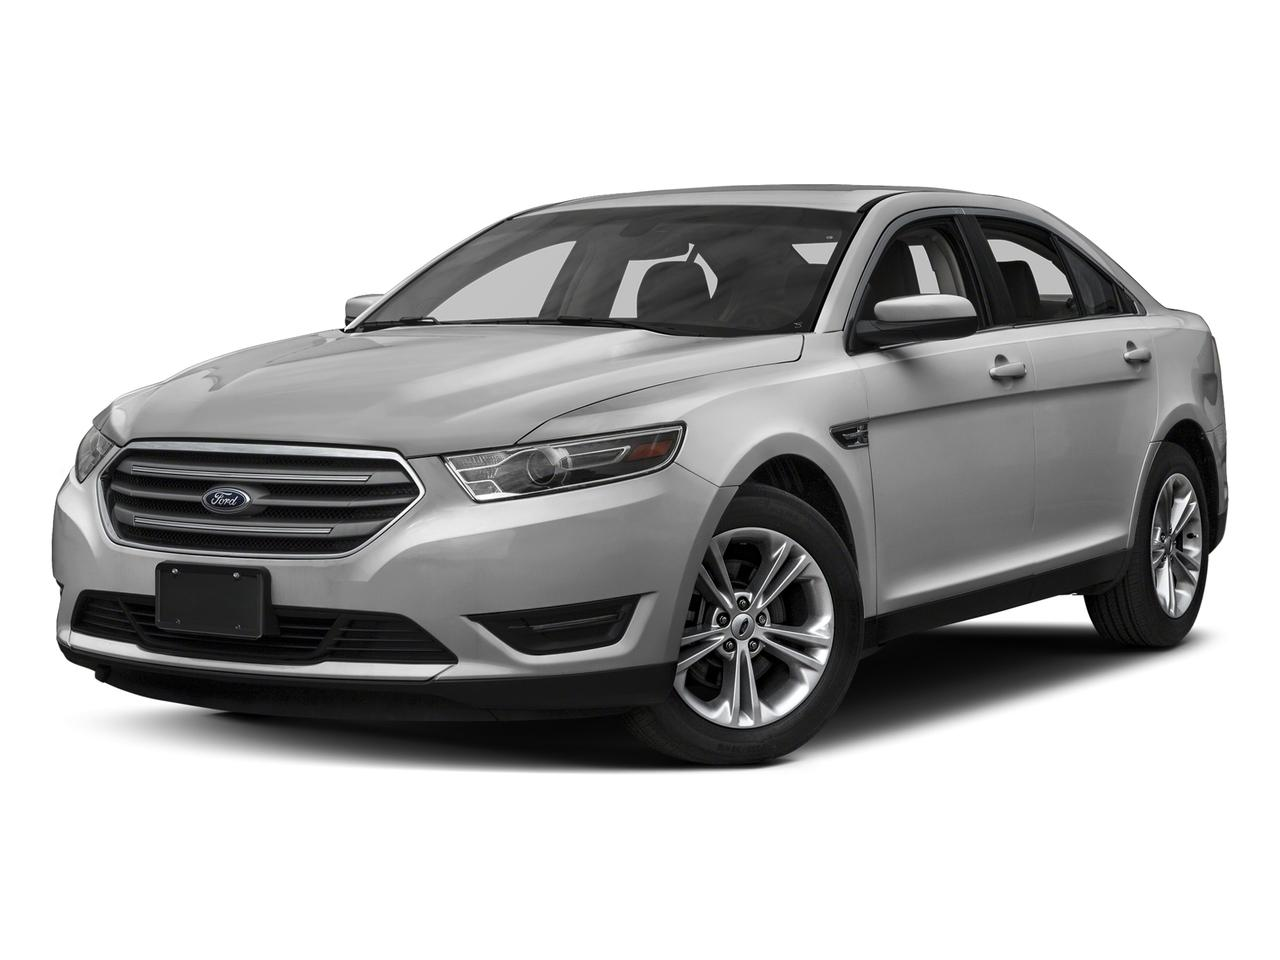 2016 Ford Taurus Vehicle Photo in Beaufort, SC 29906